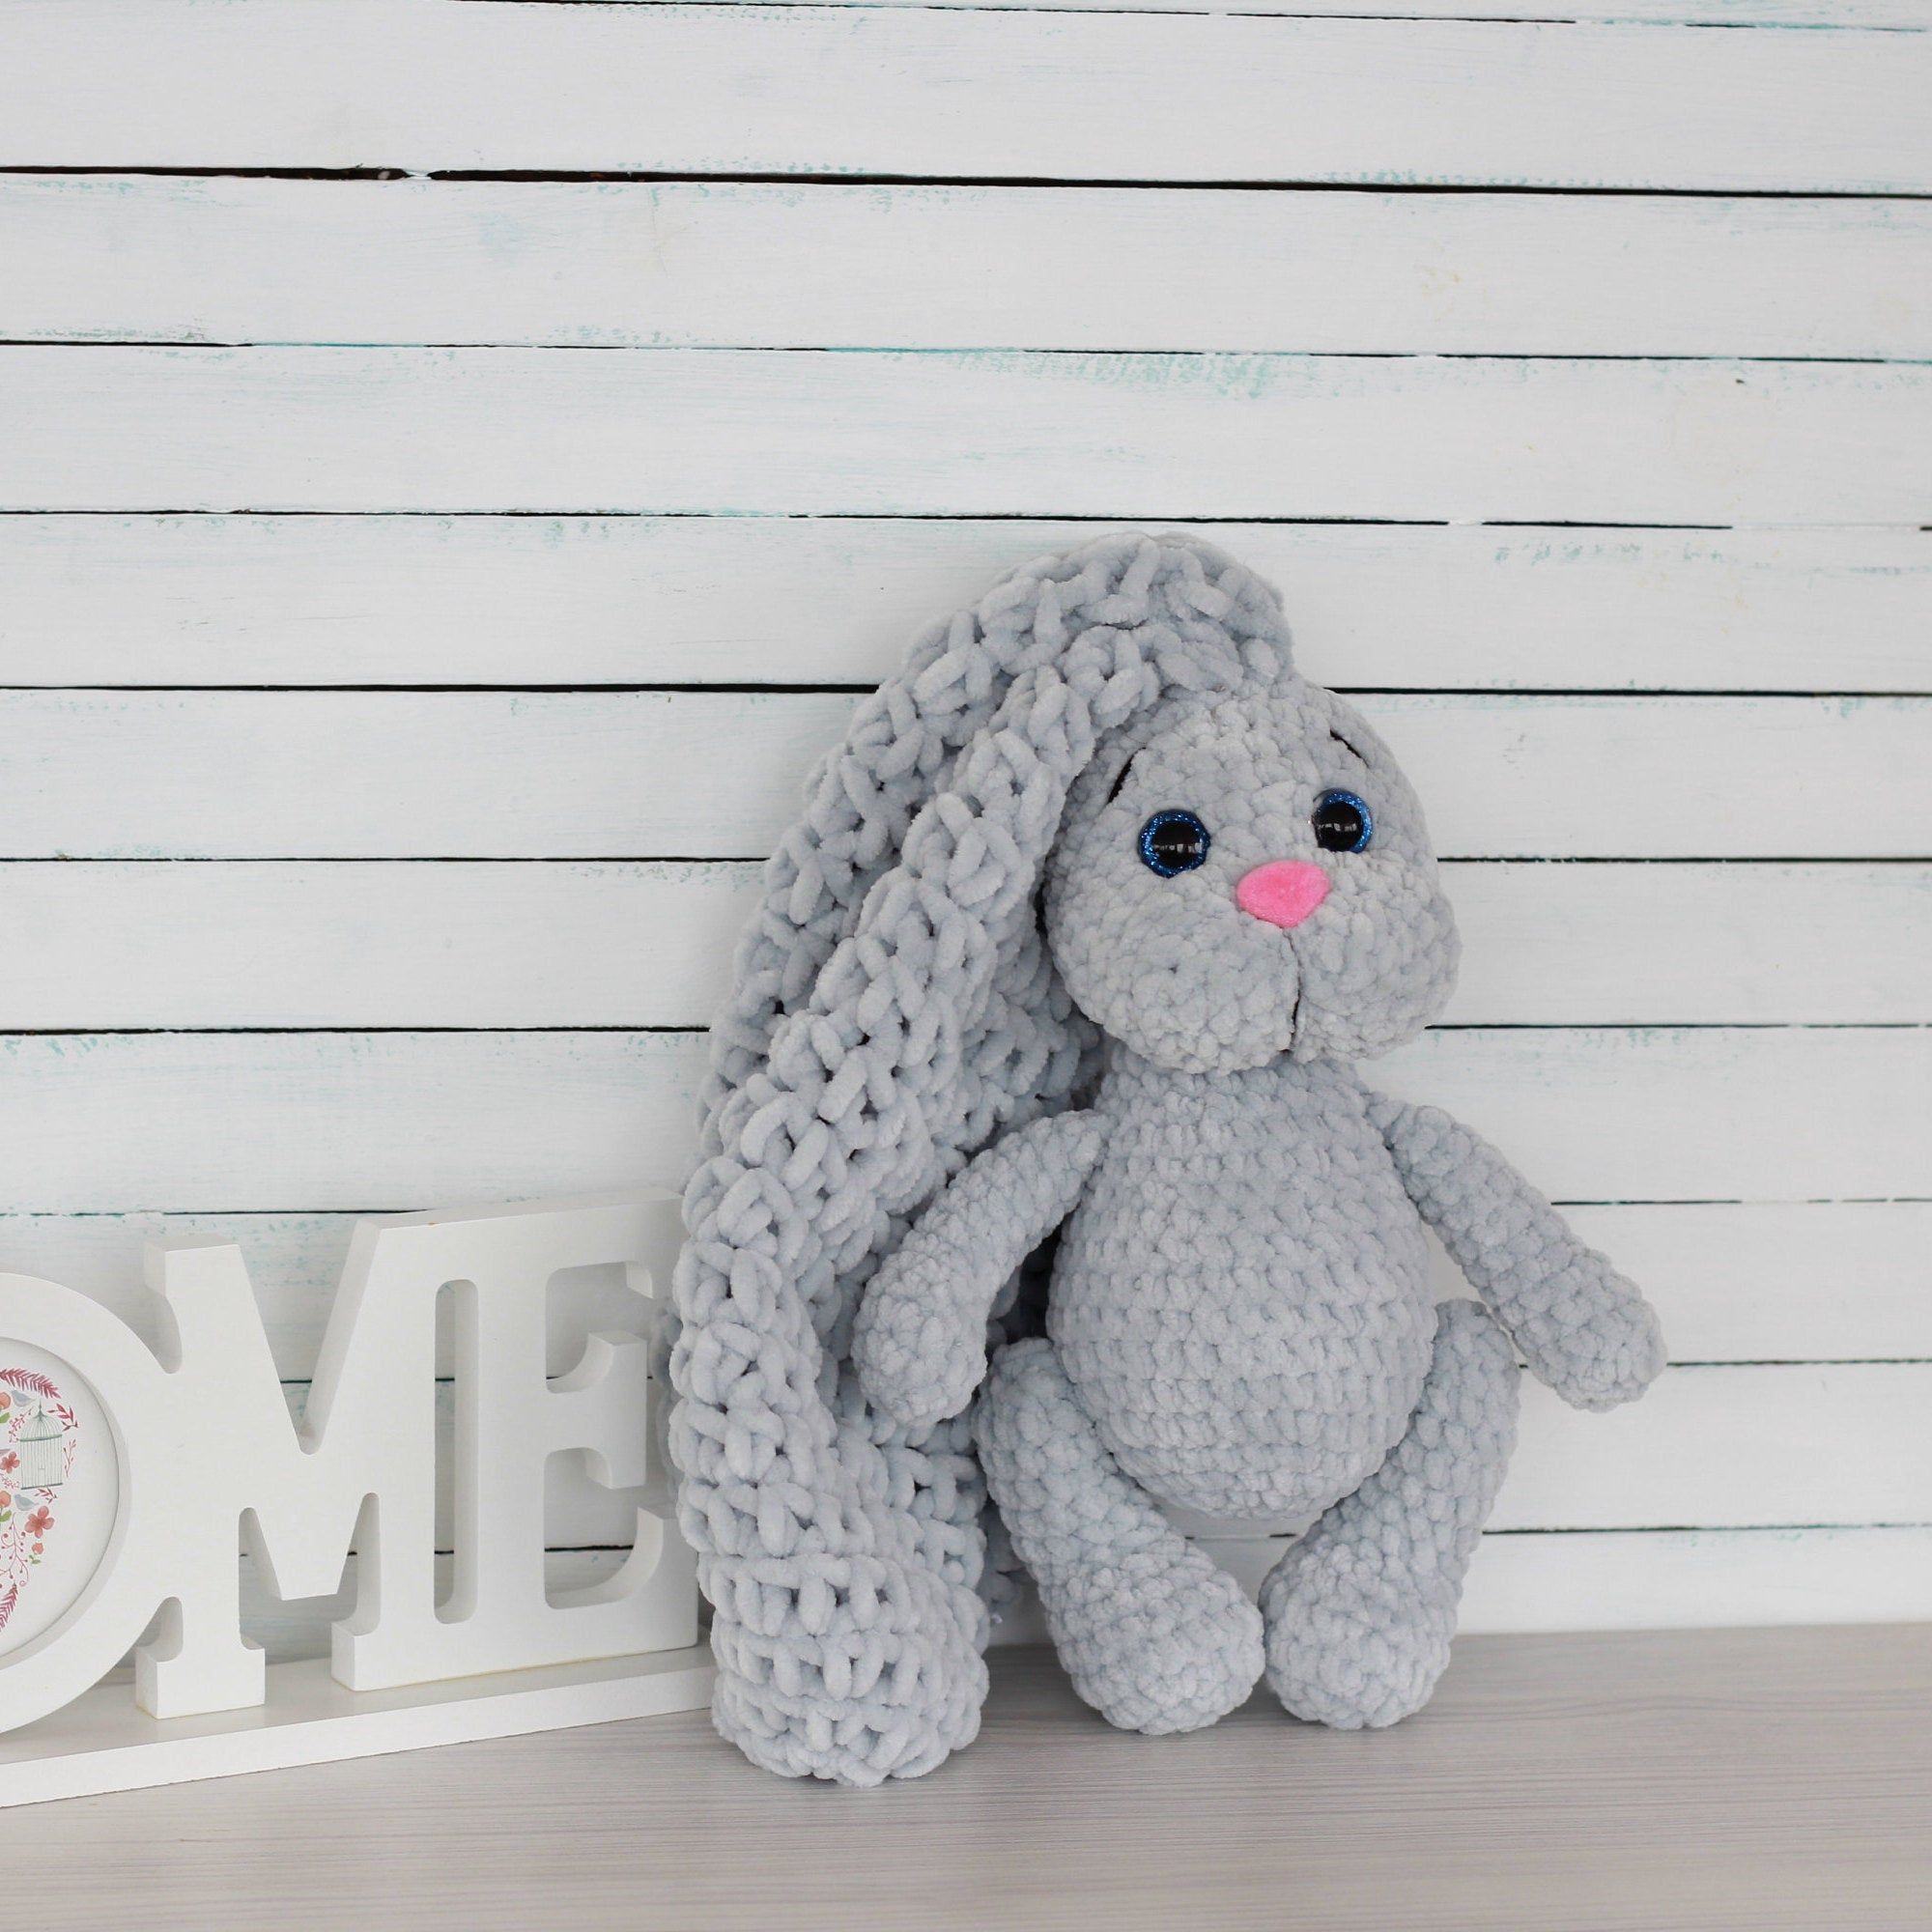 Ms Luna/Christmas Gifts Handmade Amigurumi Plush Toys: Knitted ... | 2000x2000